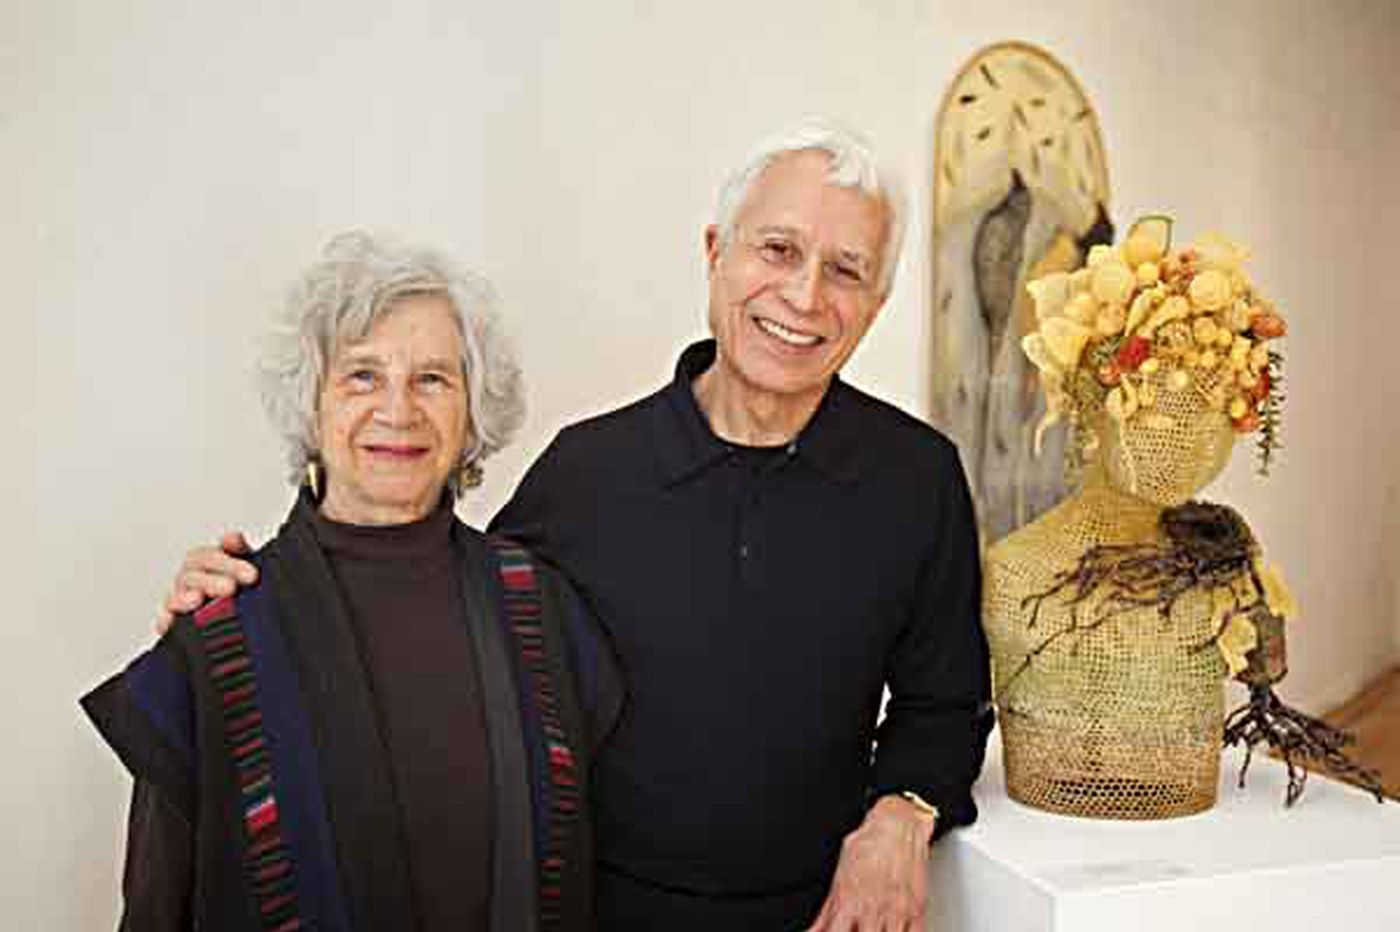 Snyderman to be feted for 48 years in Philadelphia's crafts movement